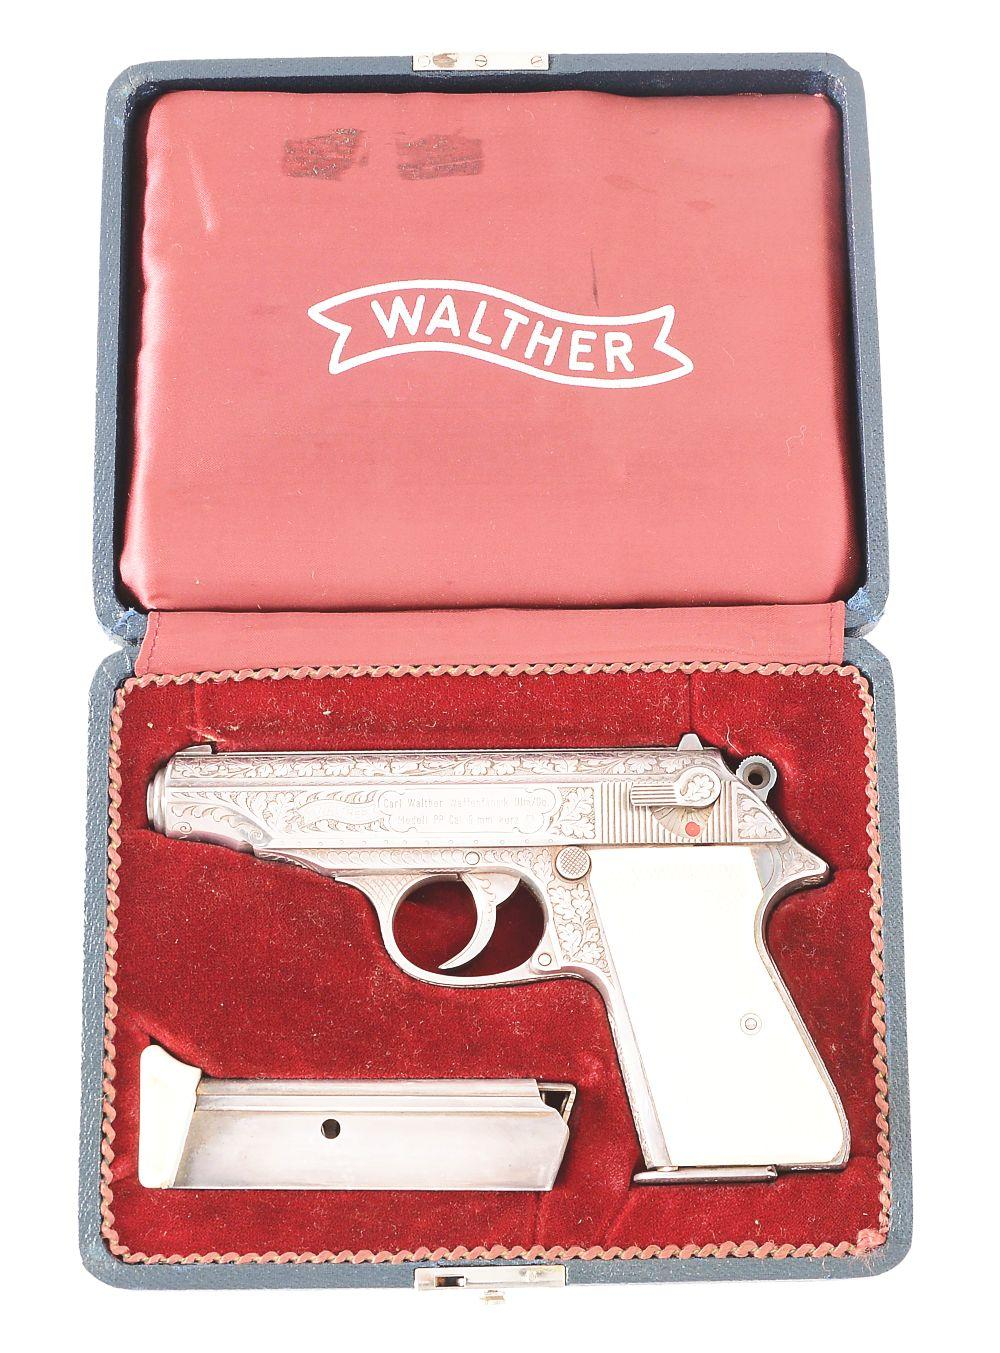 (C) FACTORY ENGRAVED & CASED WALTHER MODEL PP SEMI-AUTOMATIC PISTOL.